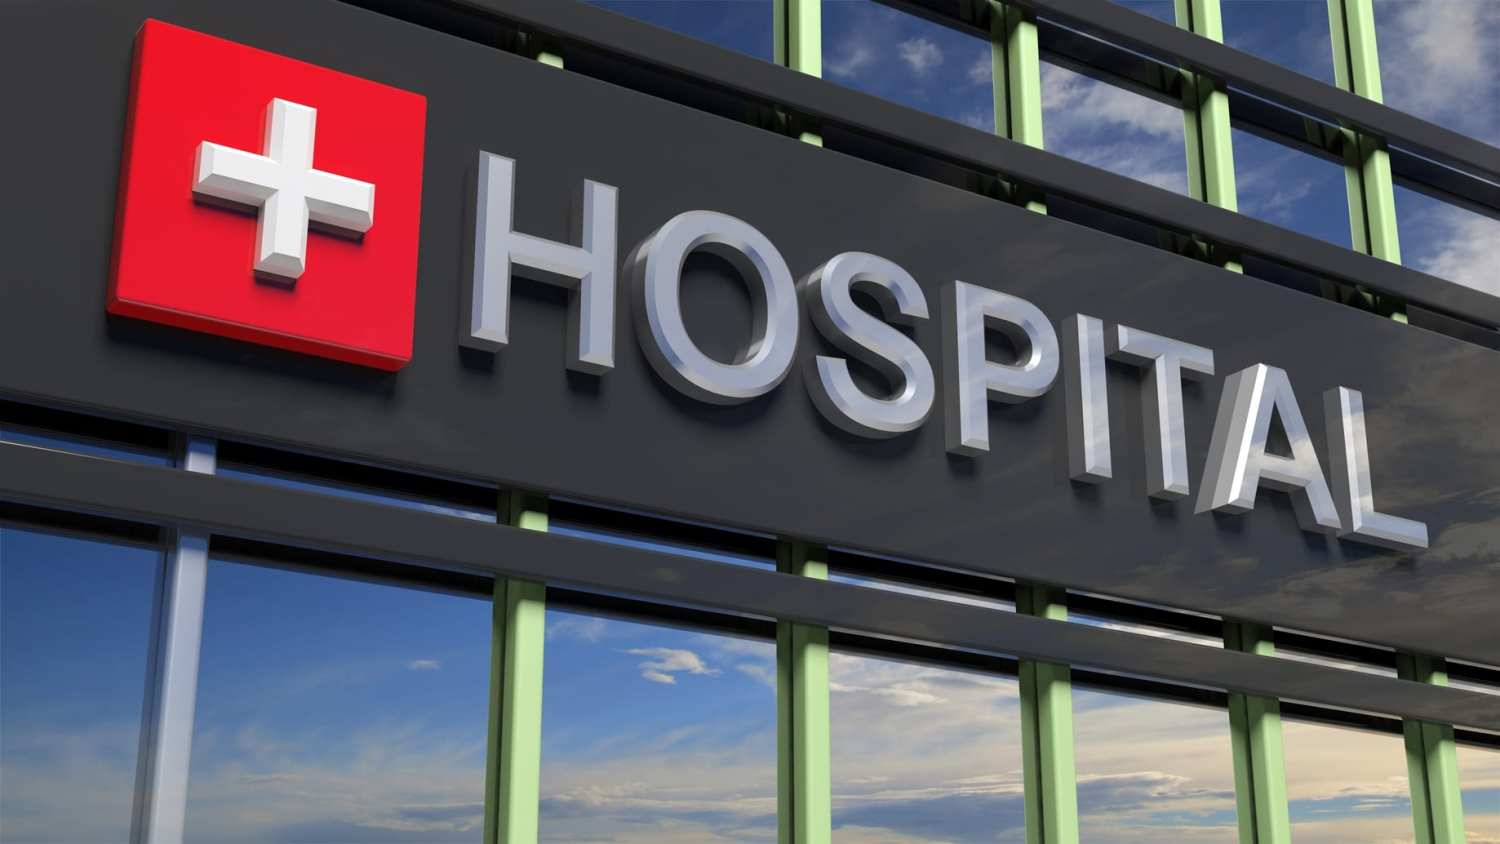 how to choose a hospital